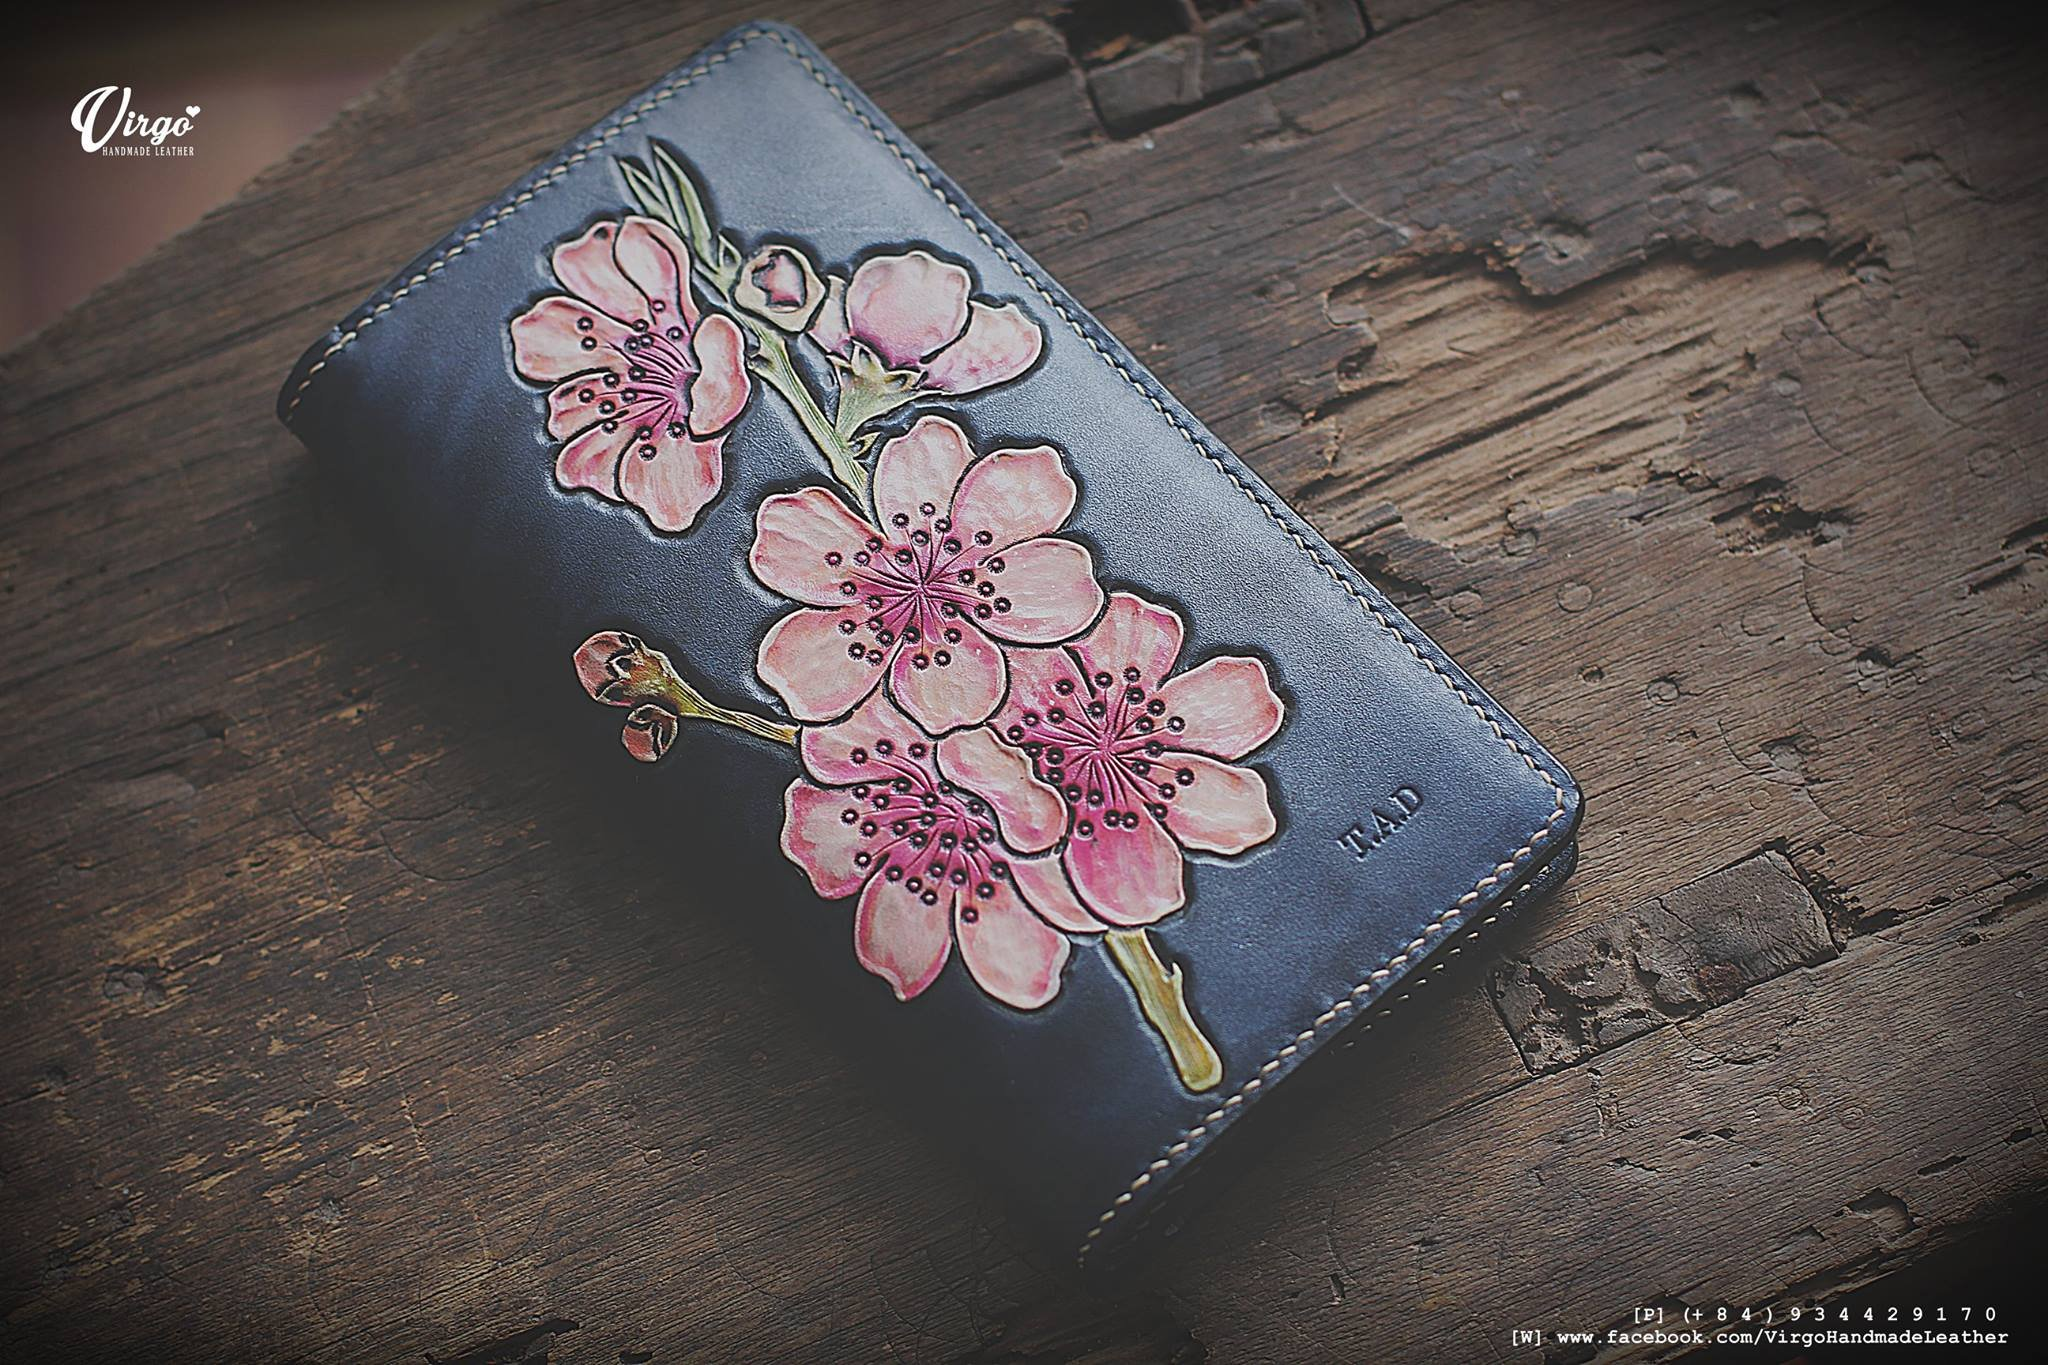 Blossom hand tooled long wallet for women | Personalized Vintage vegetable tanned leather handmade wallet